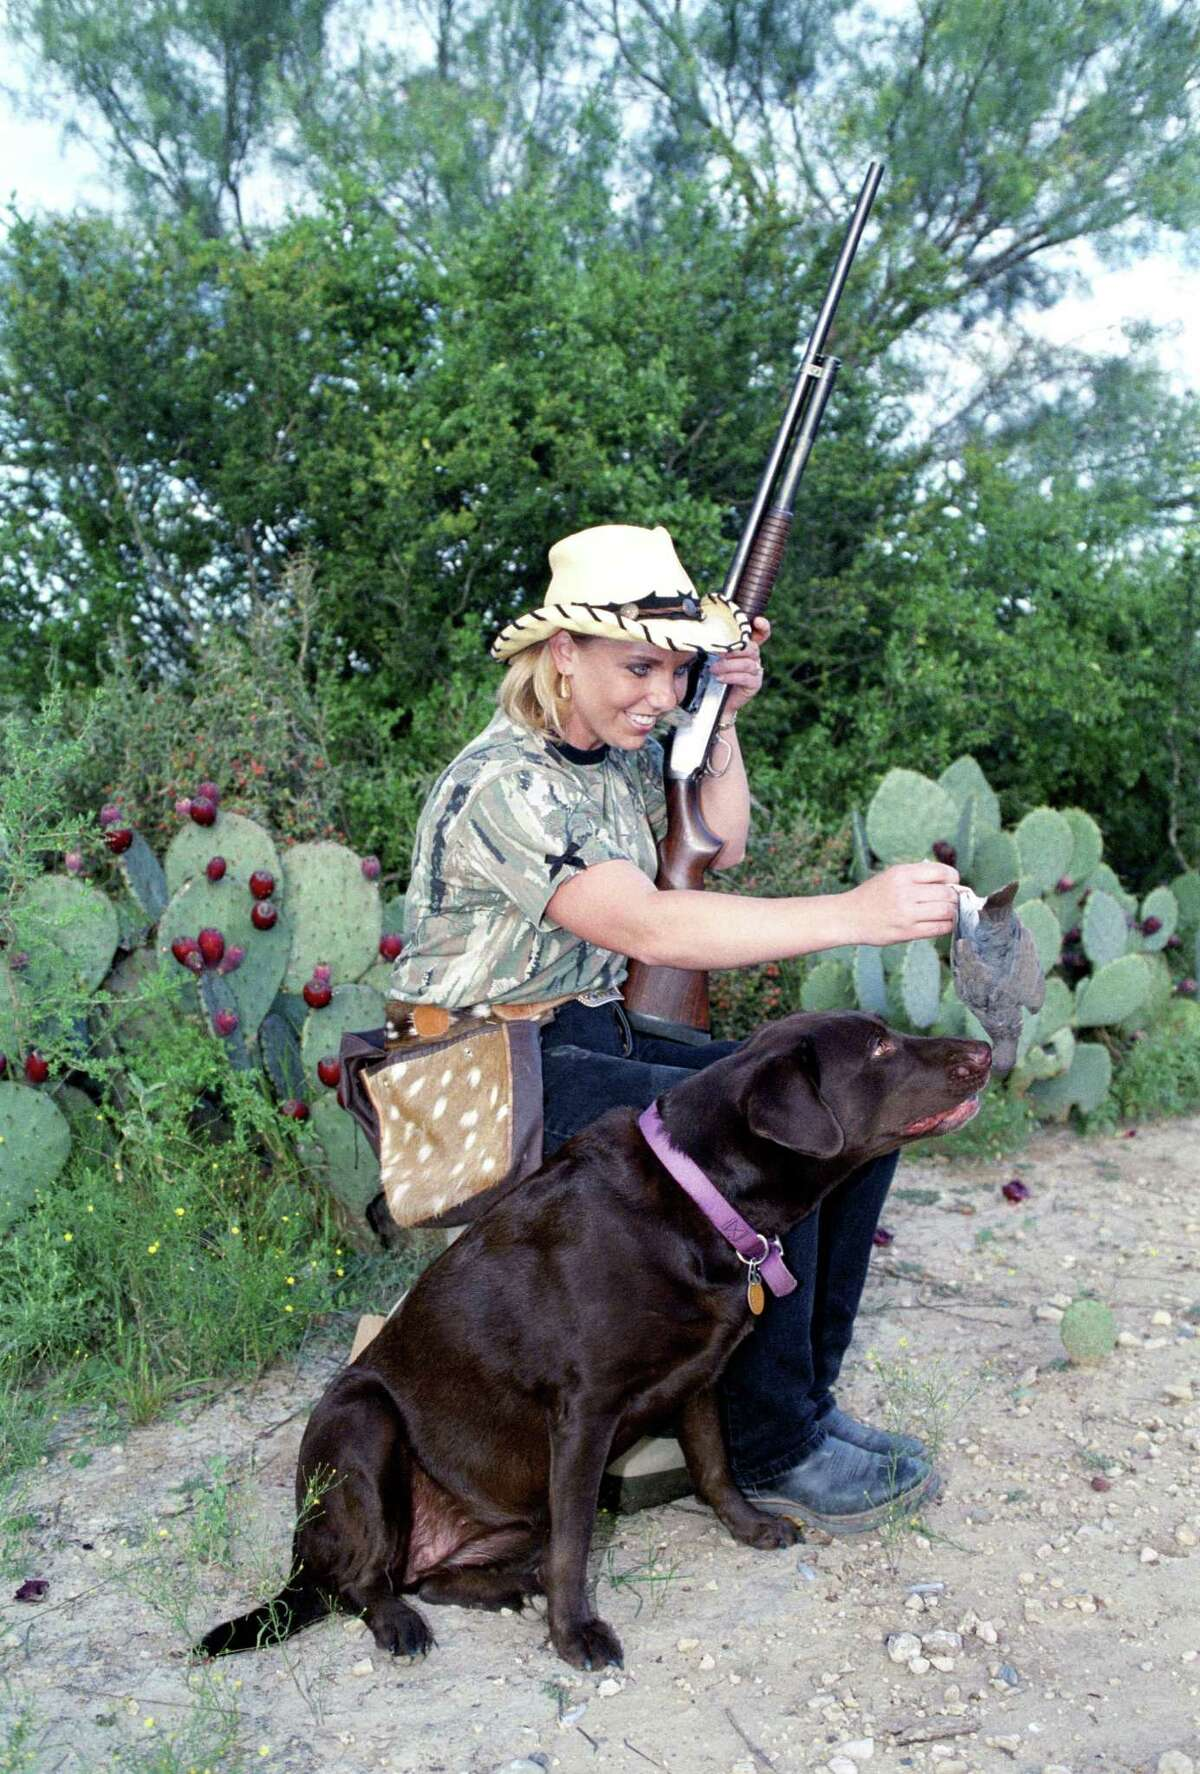 The million-plus acres involved in Texas '2018-19 public hunting program includes 124 tracts of leased private land covering 46,000 acres in 50 counties to which holders of a $48 Annual Public Hunting permit have access for hunting doves and small game.